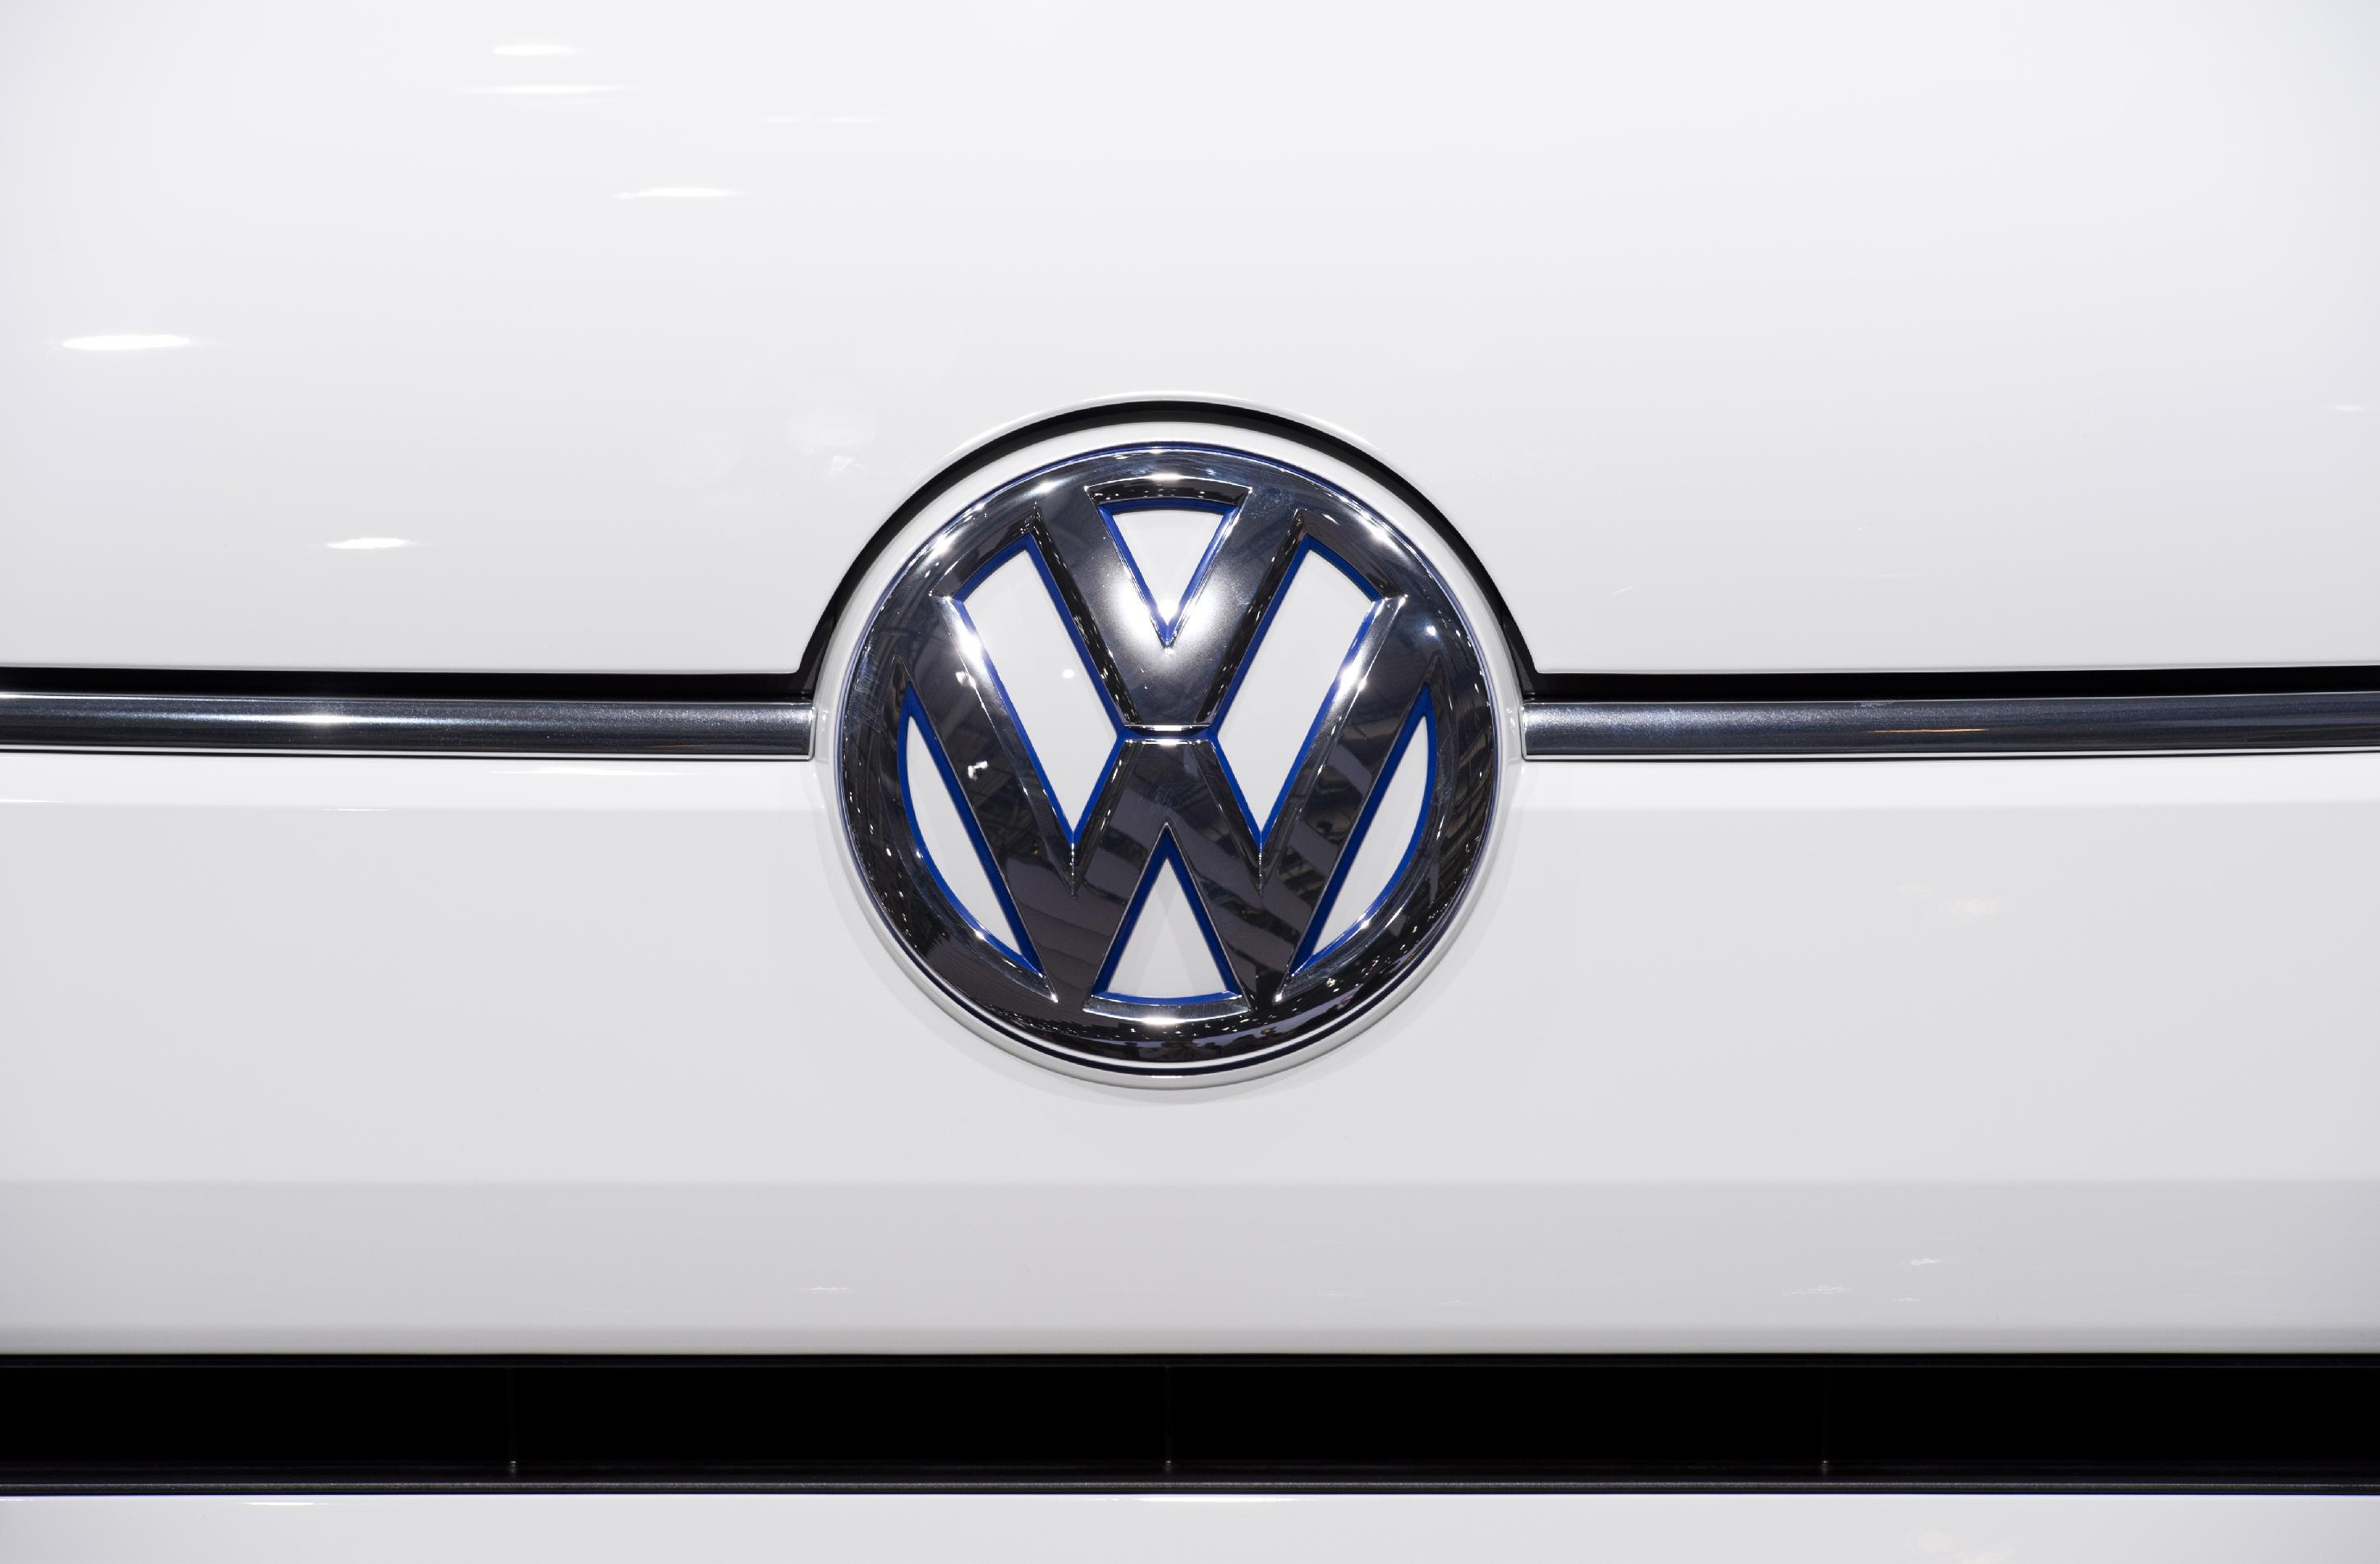 VW's pollution-cheating device: how it works & how to fix it